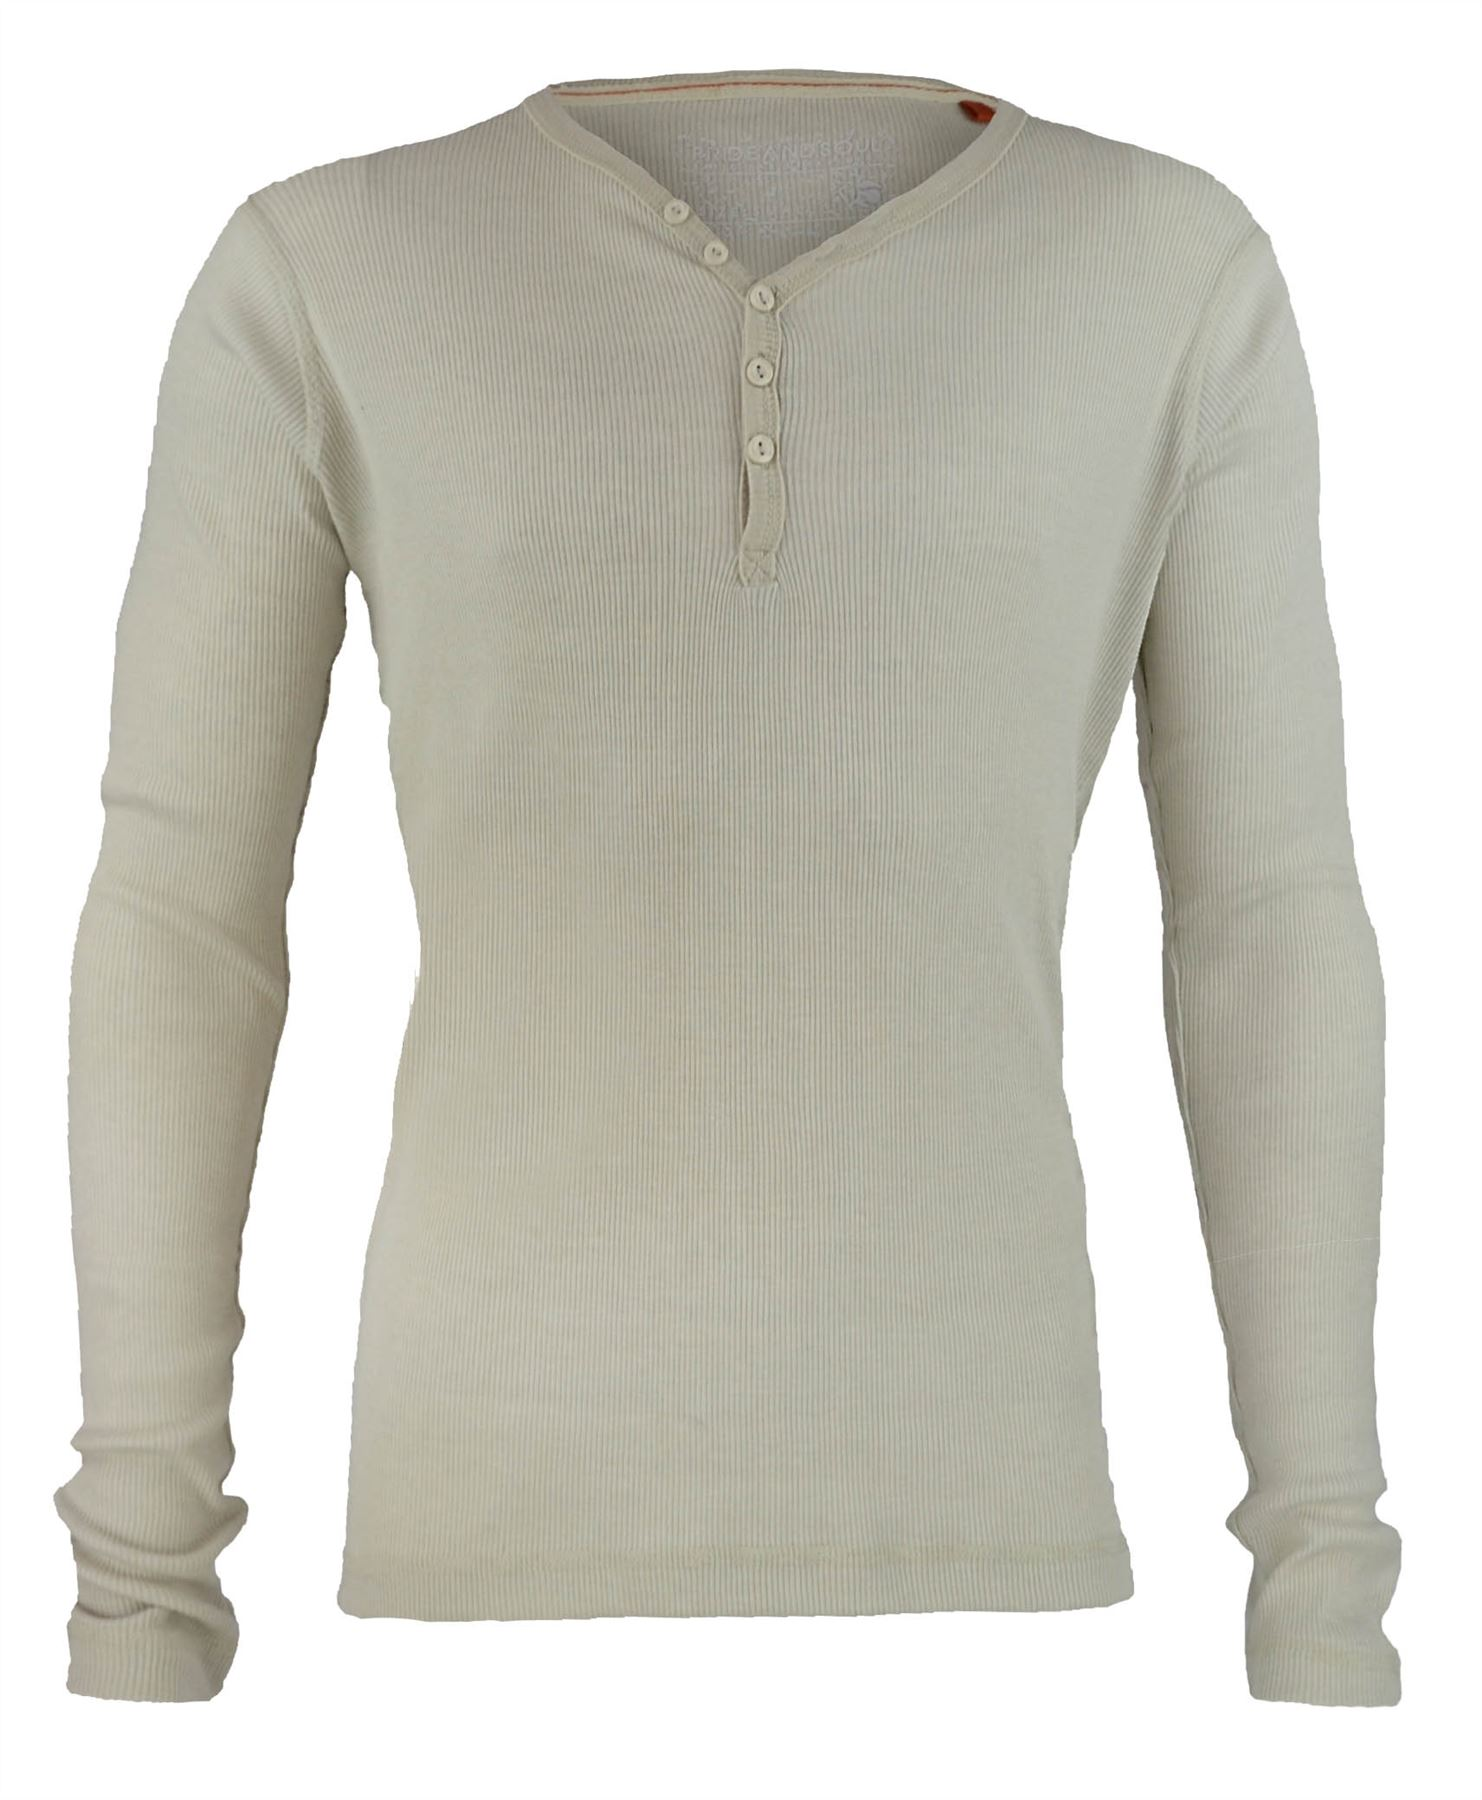 Mens V Neck Button Top Jersey Ribbed Sweatshirt Long